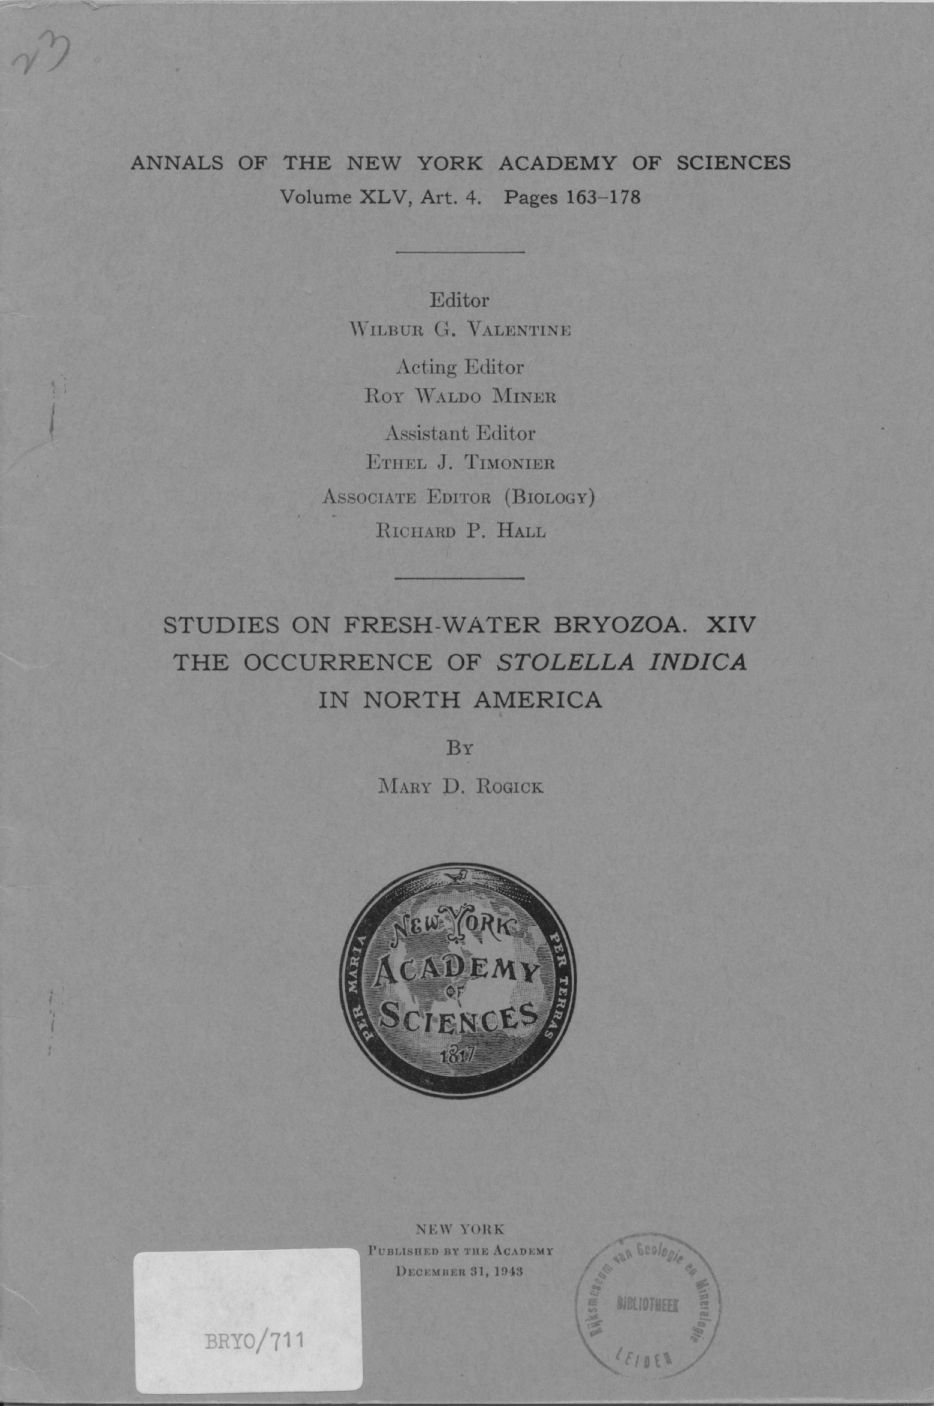 The occurrence of Stoltella indica in North America 1